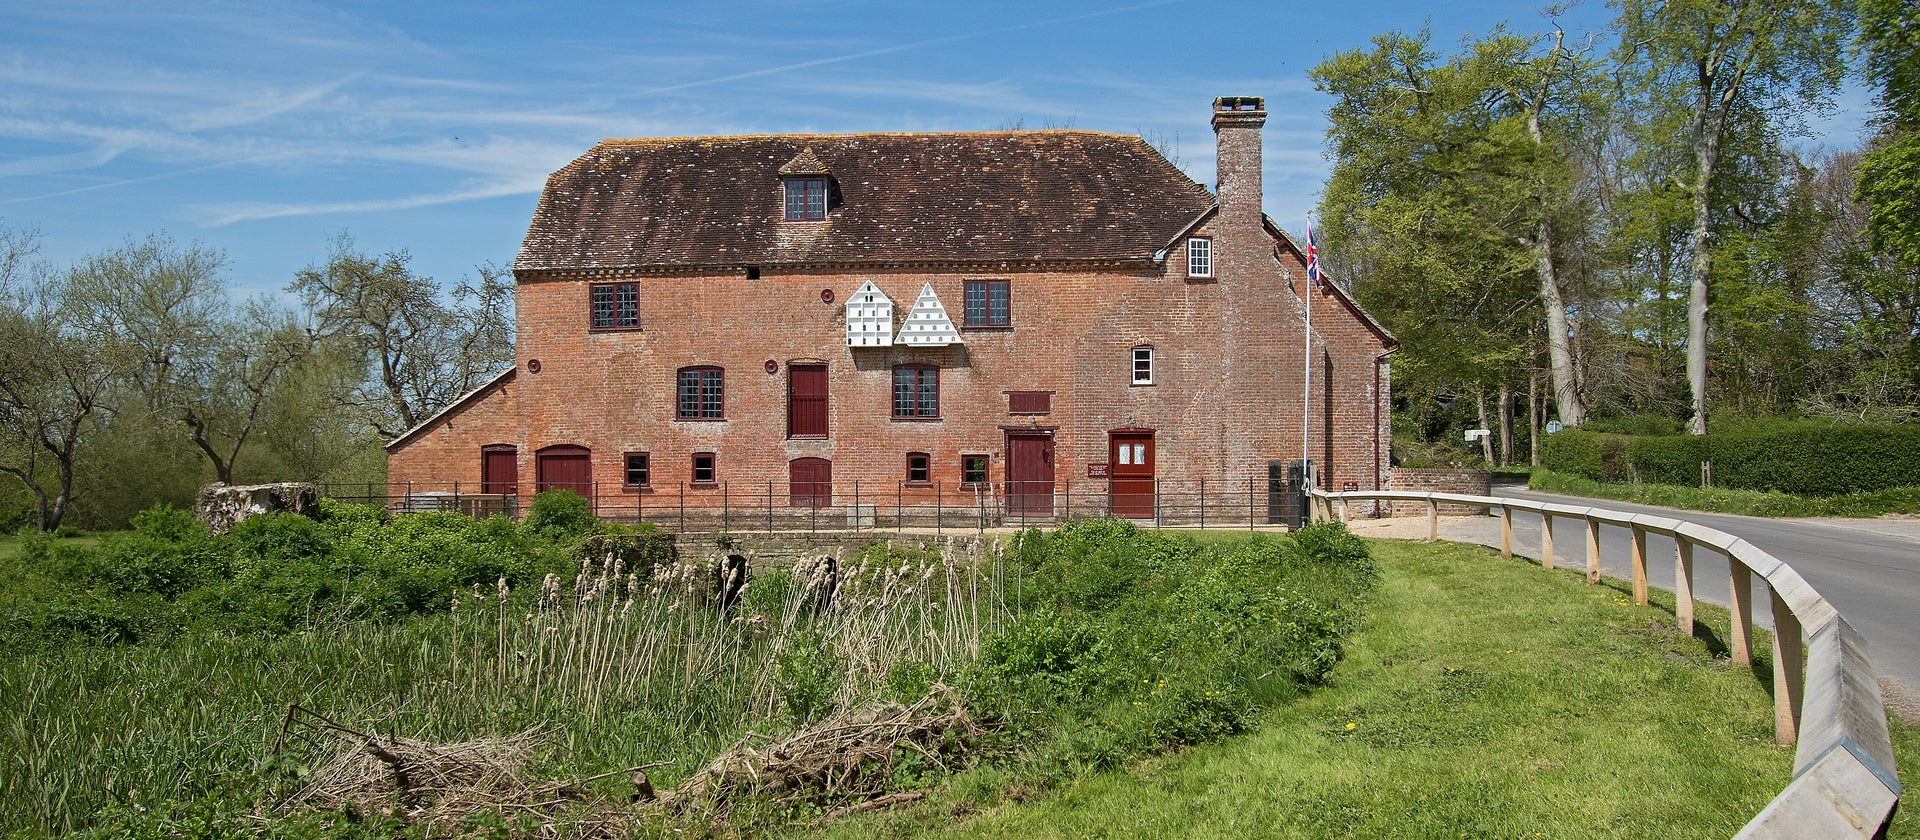 dee-maddams_white-mill | The Stour Valley Way